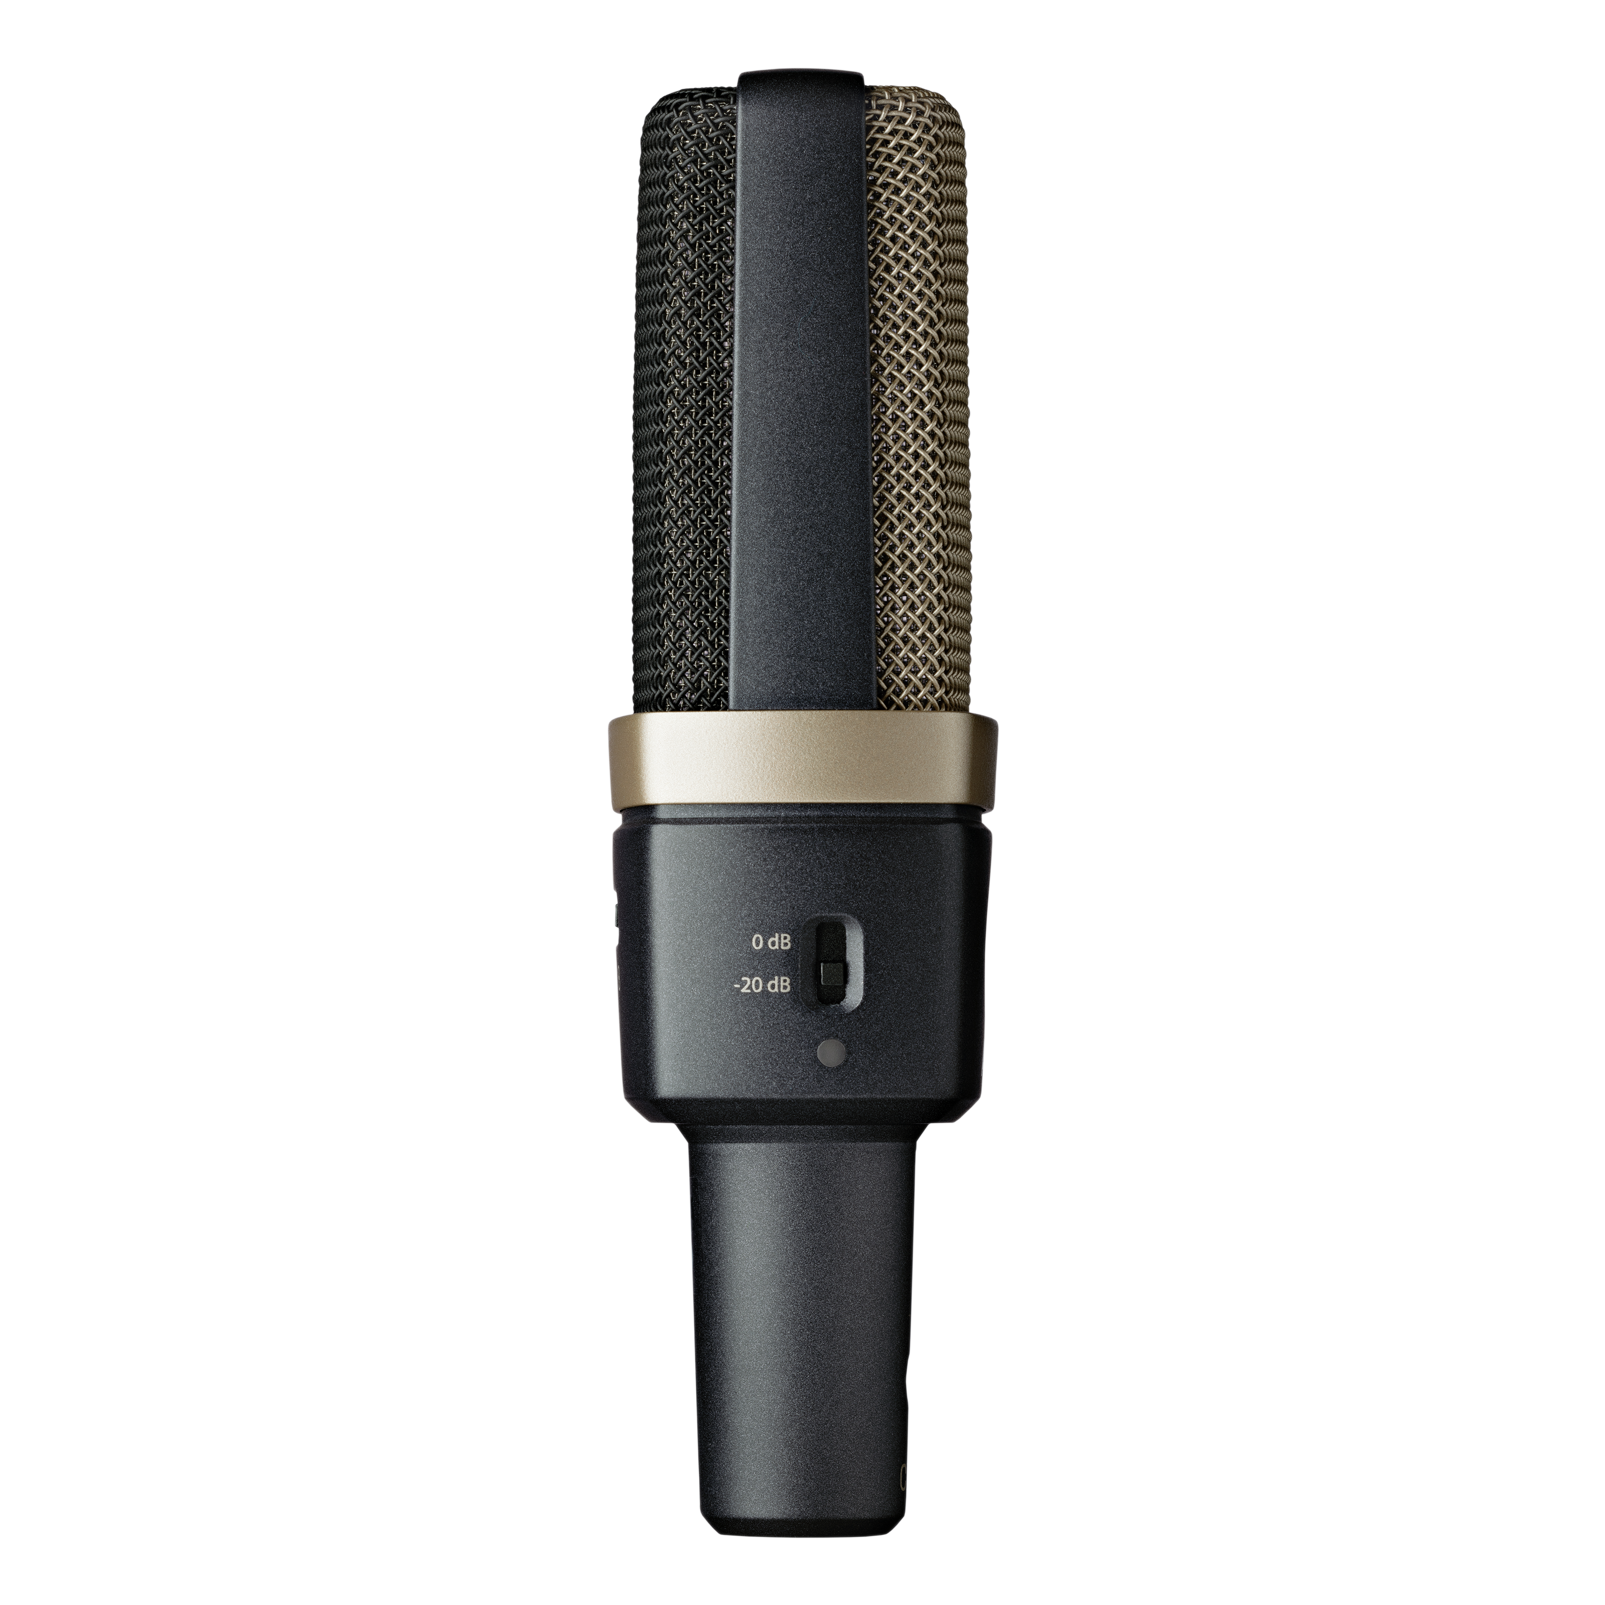 C314 - Black - Professional multi-pattern condenser microphone - Left